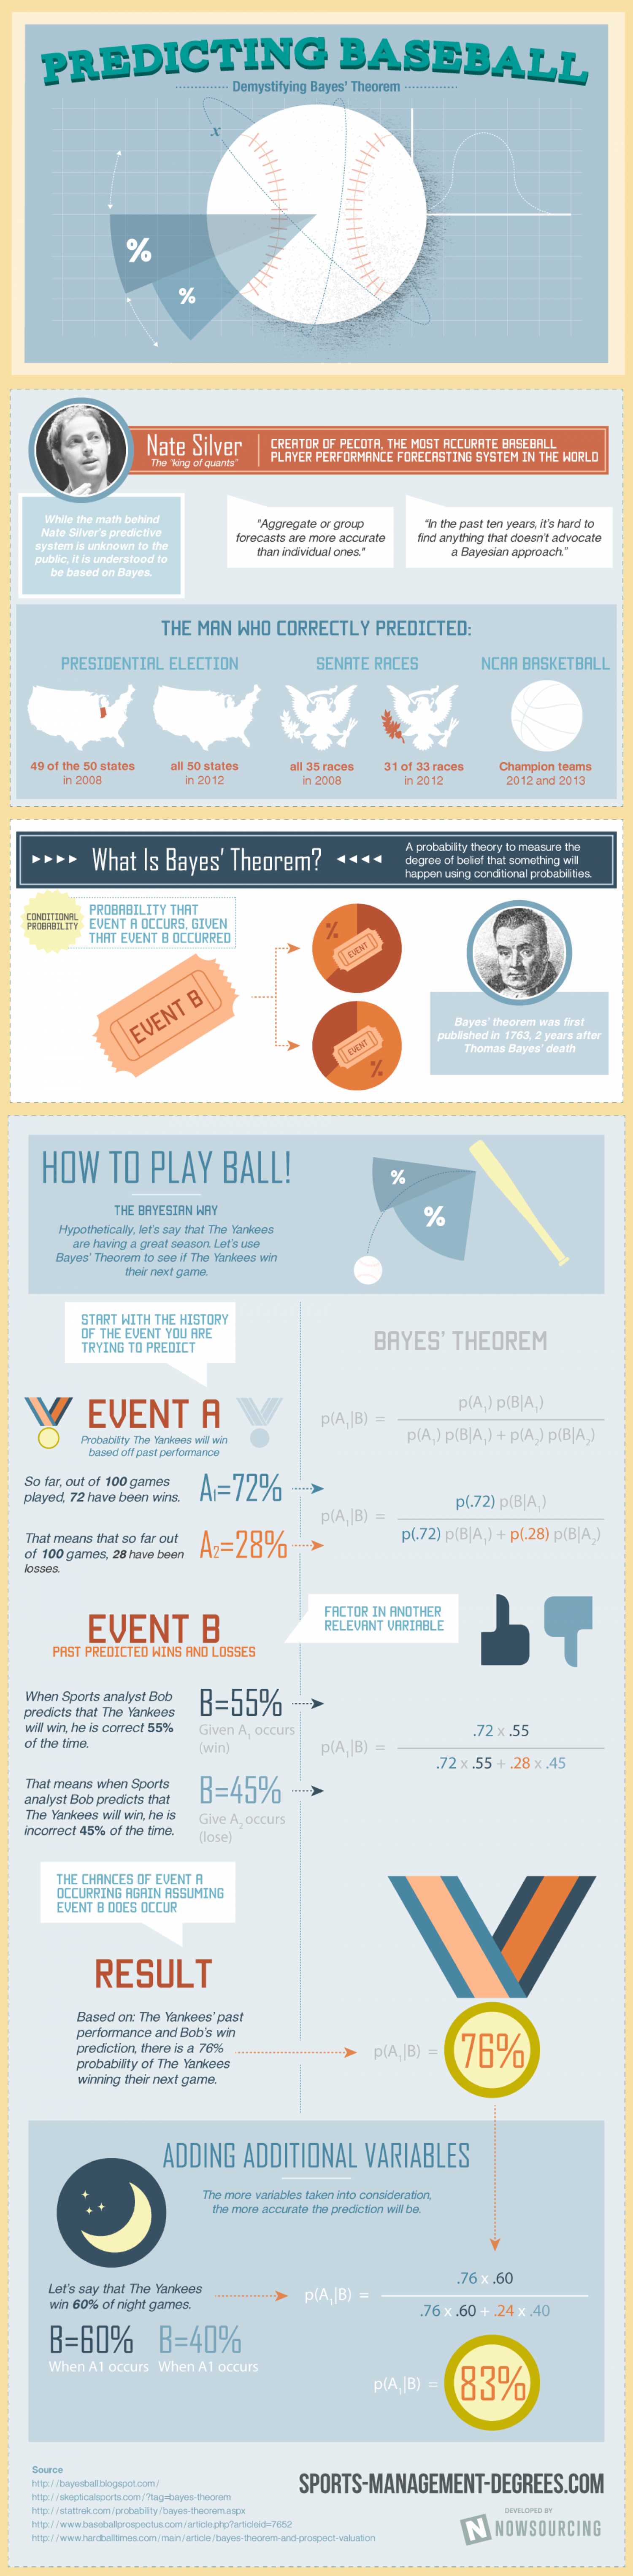 Predicting Baseball with Bayes' Theorem Infographic